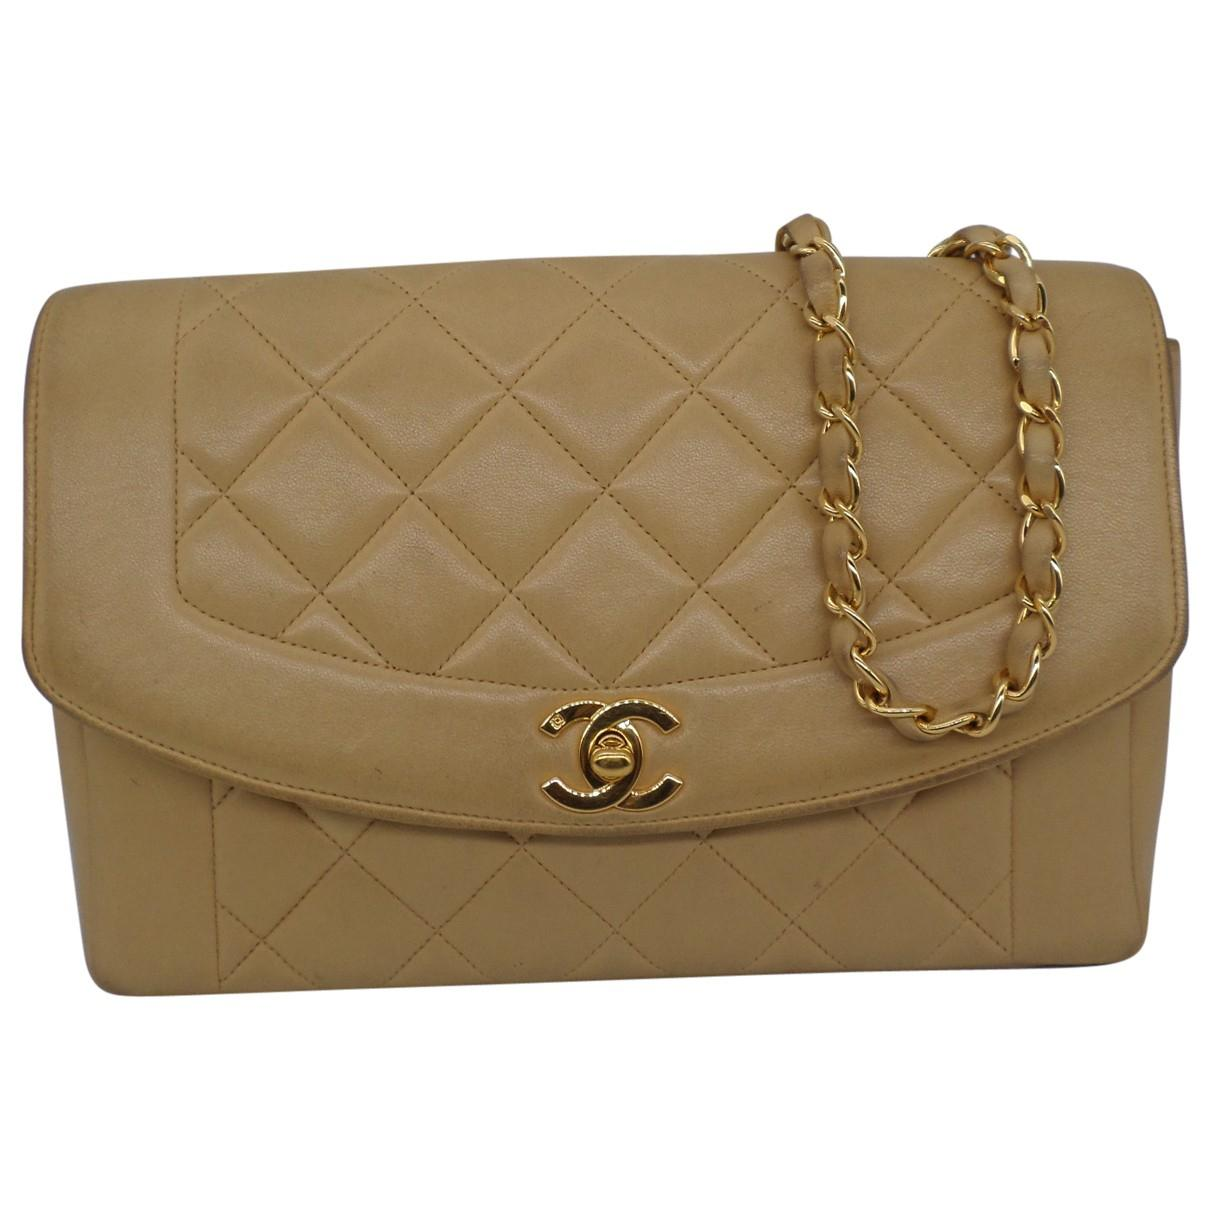 3a3ba345ec8a44 Lyst - Chanel Diana Leather Crossbody Bag in Natural